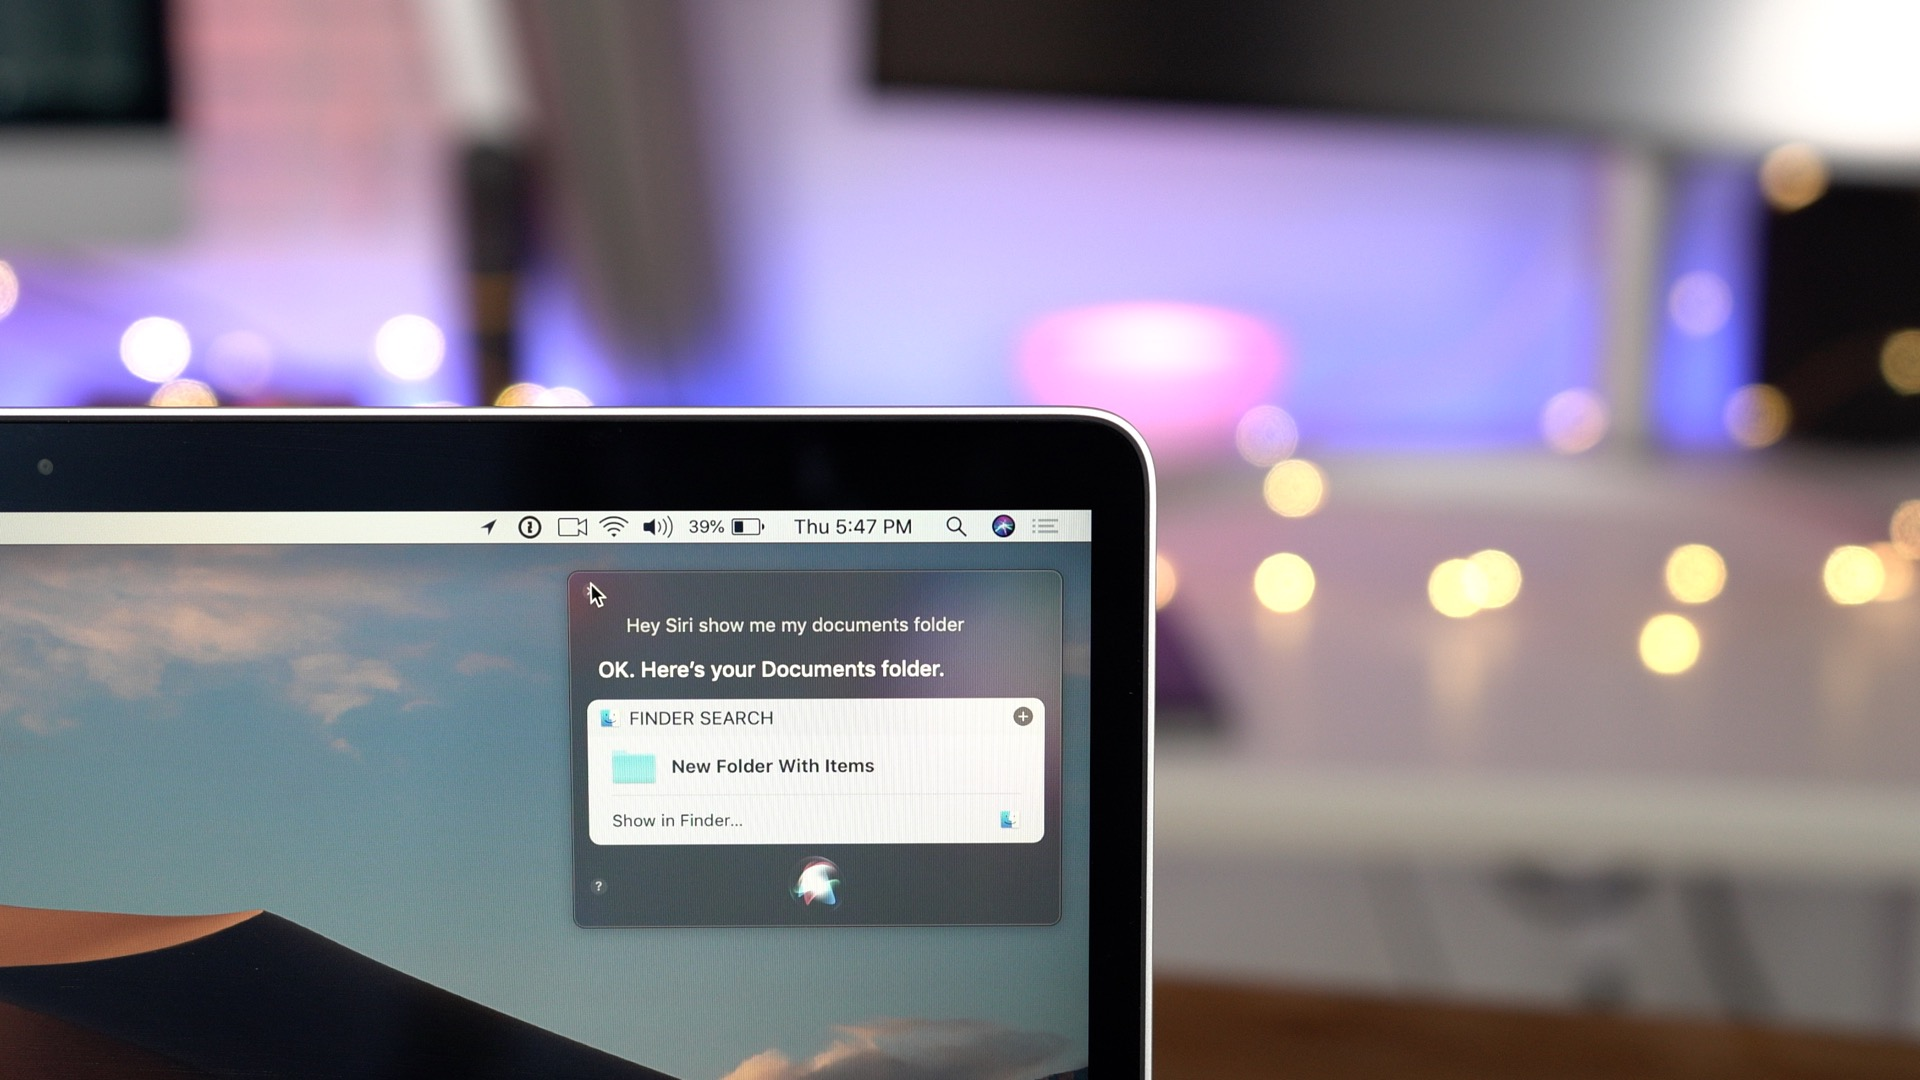 How can i see my iphone screen on my macbook air